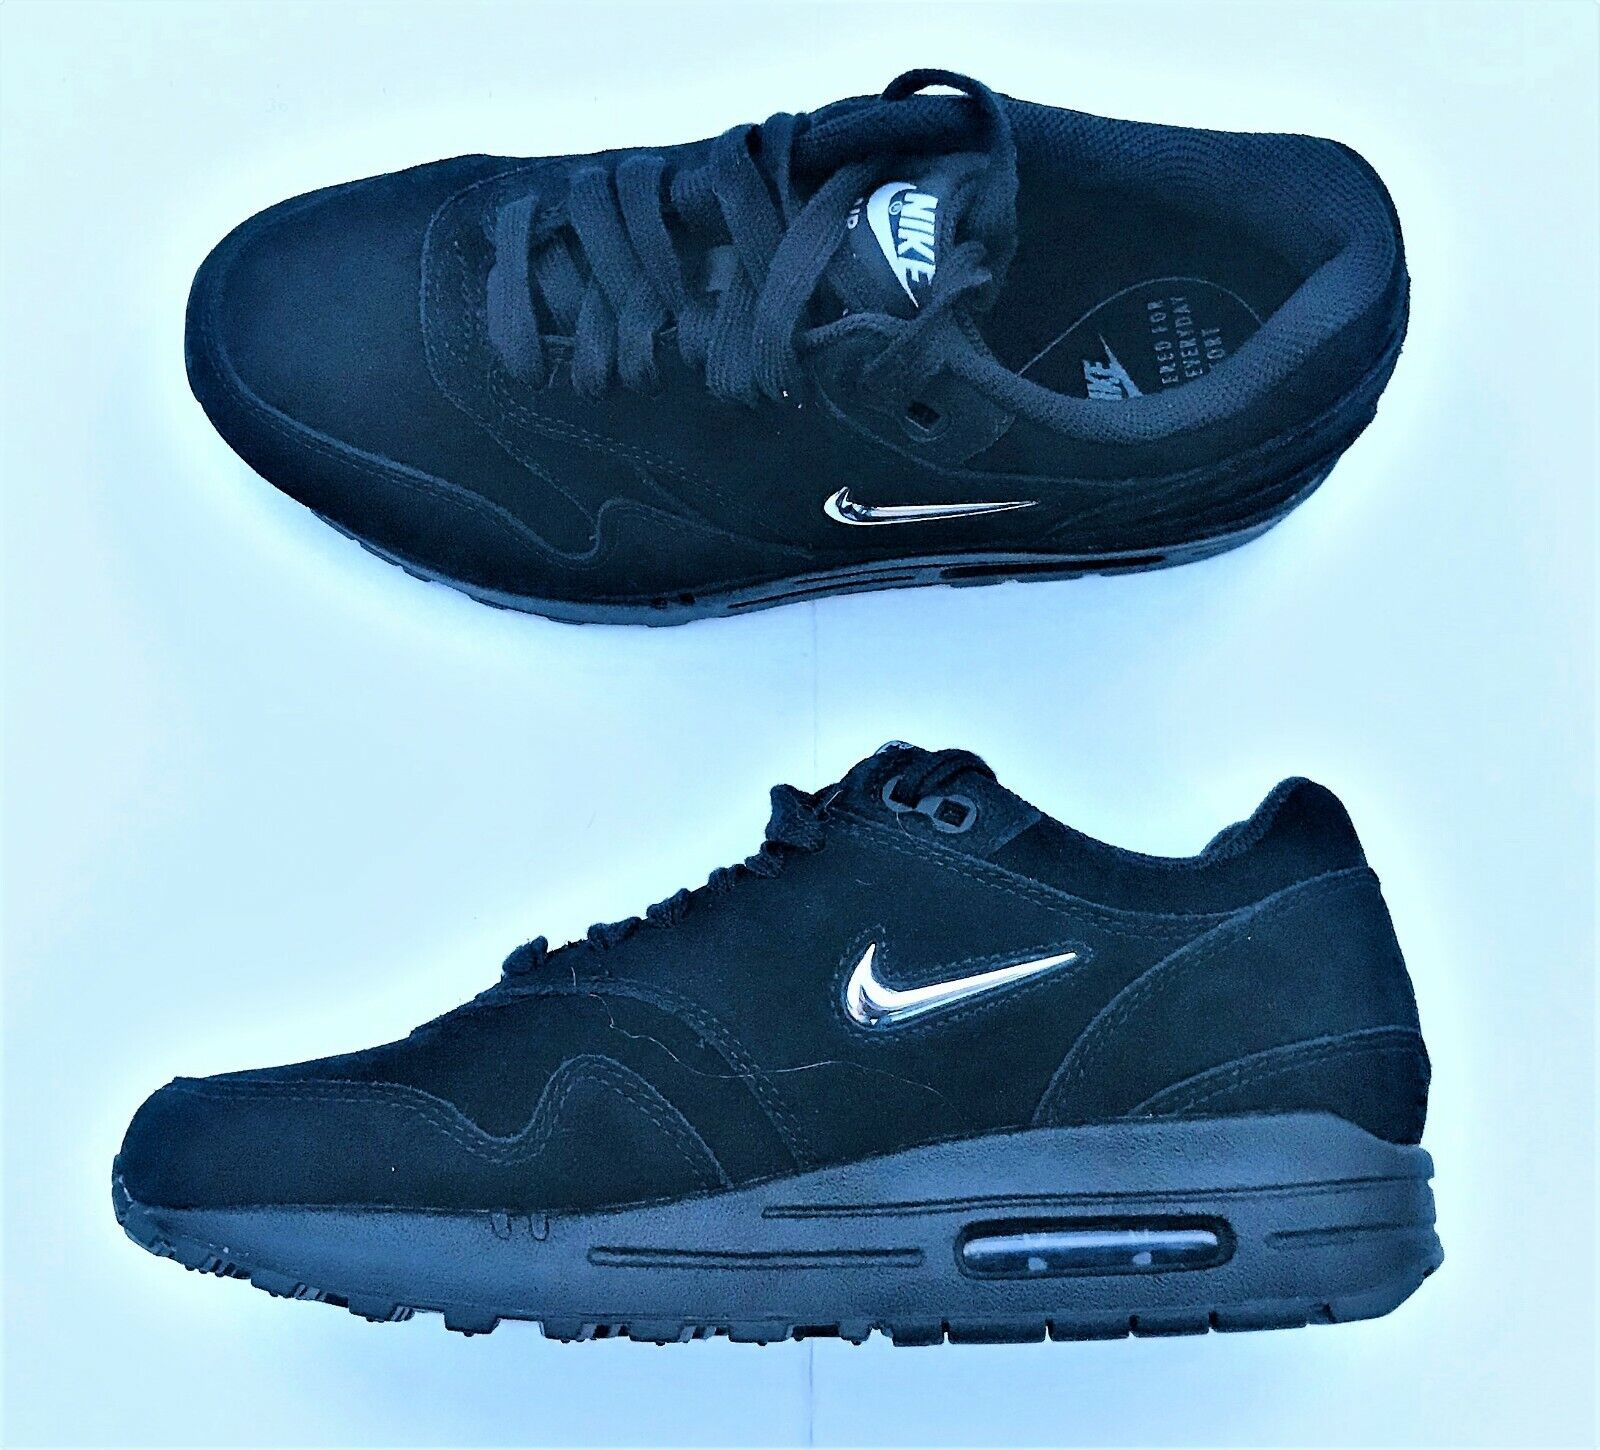 Nike Air Max 1 Premium SC shoes AA0512-001 Suede Black Silver Women's Size 7